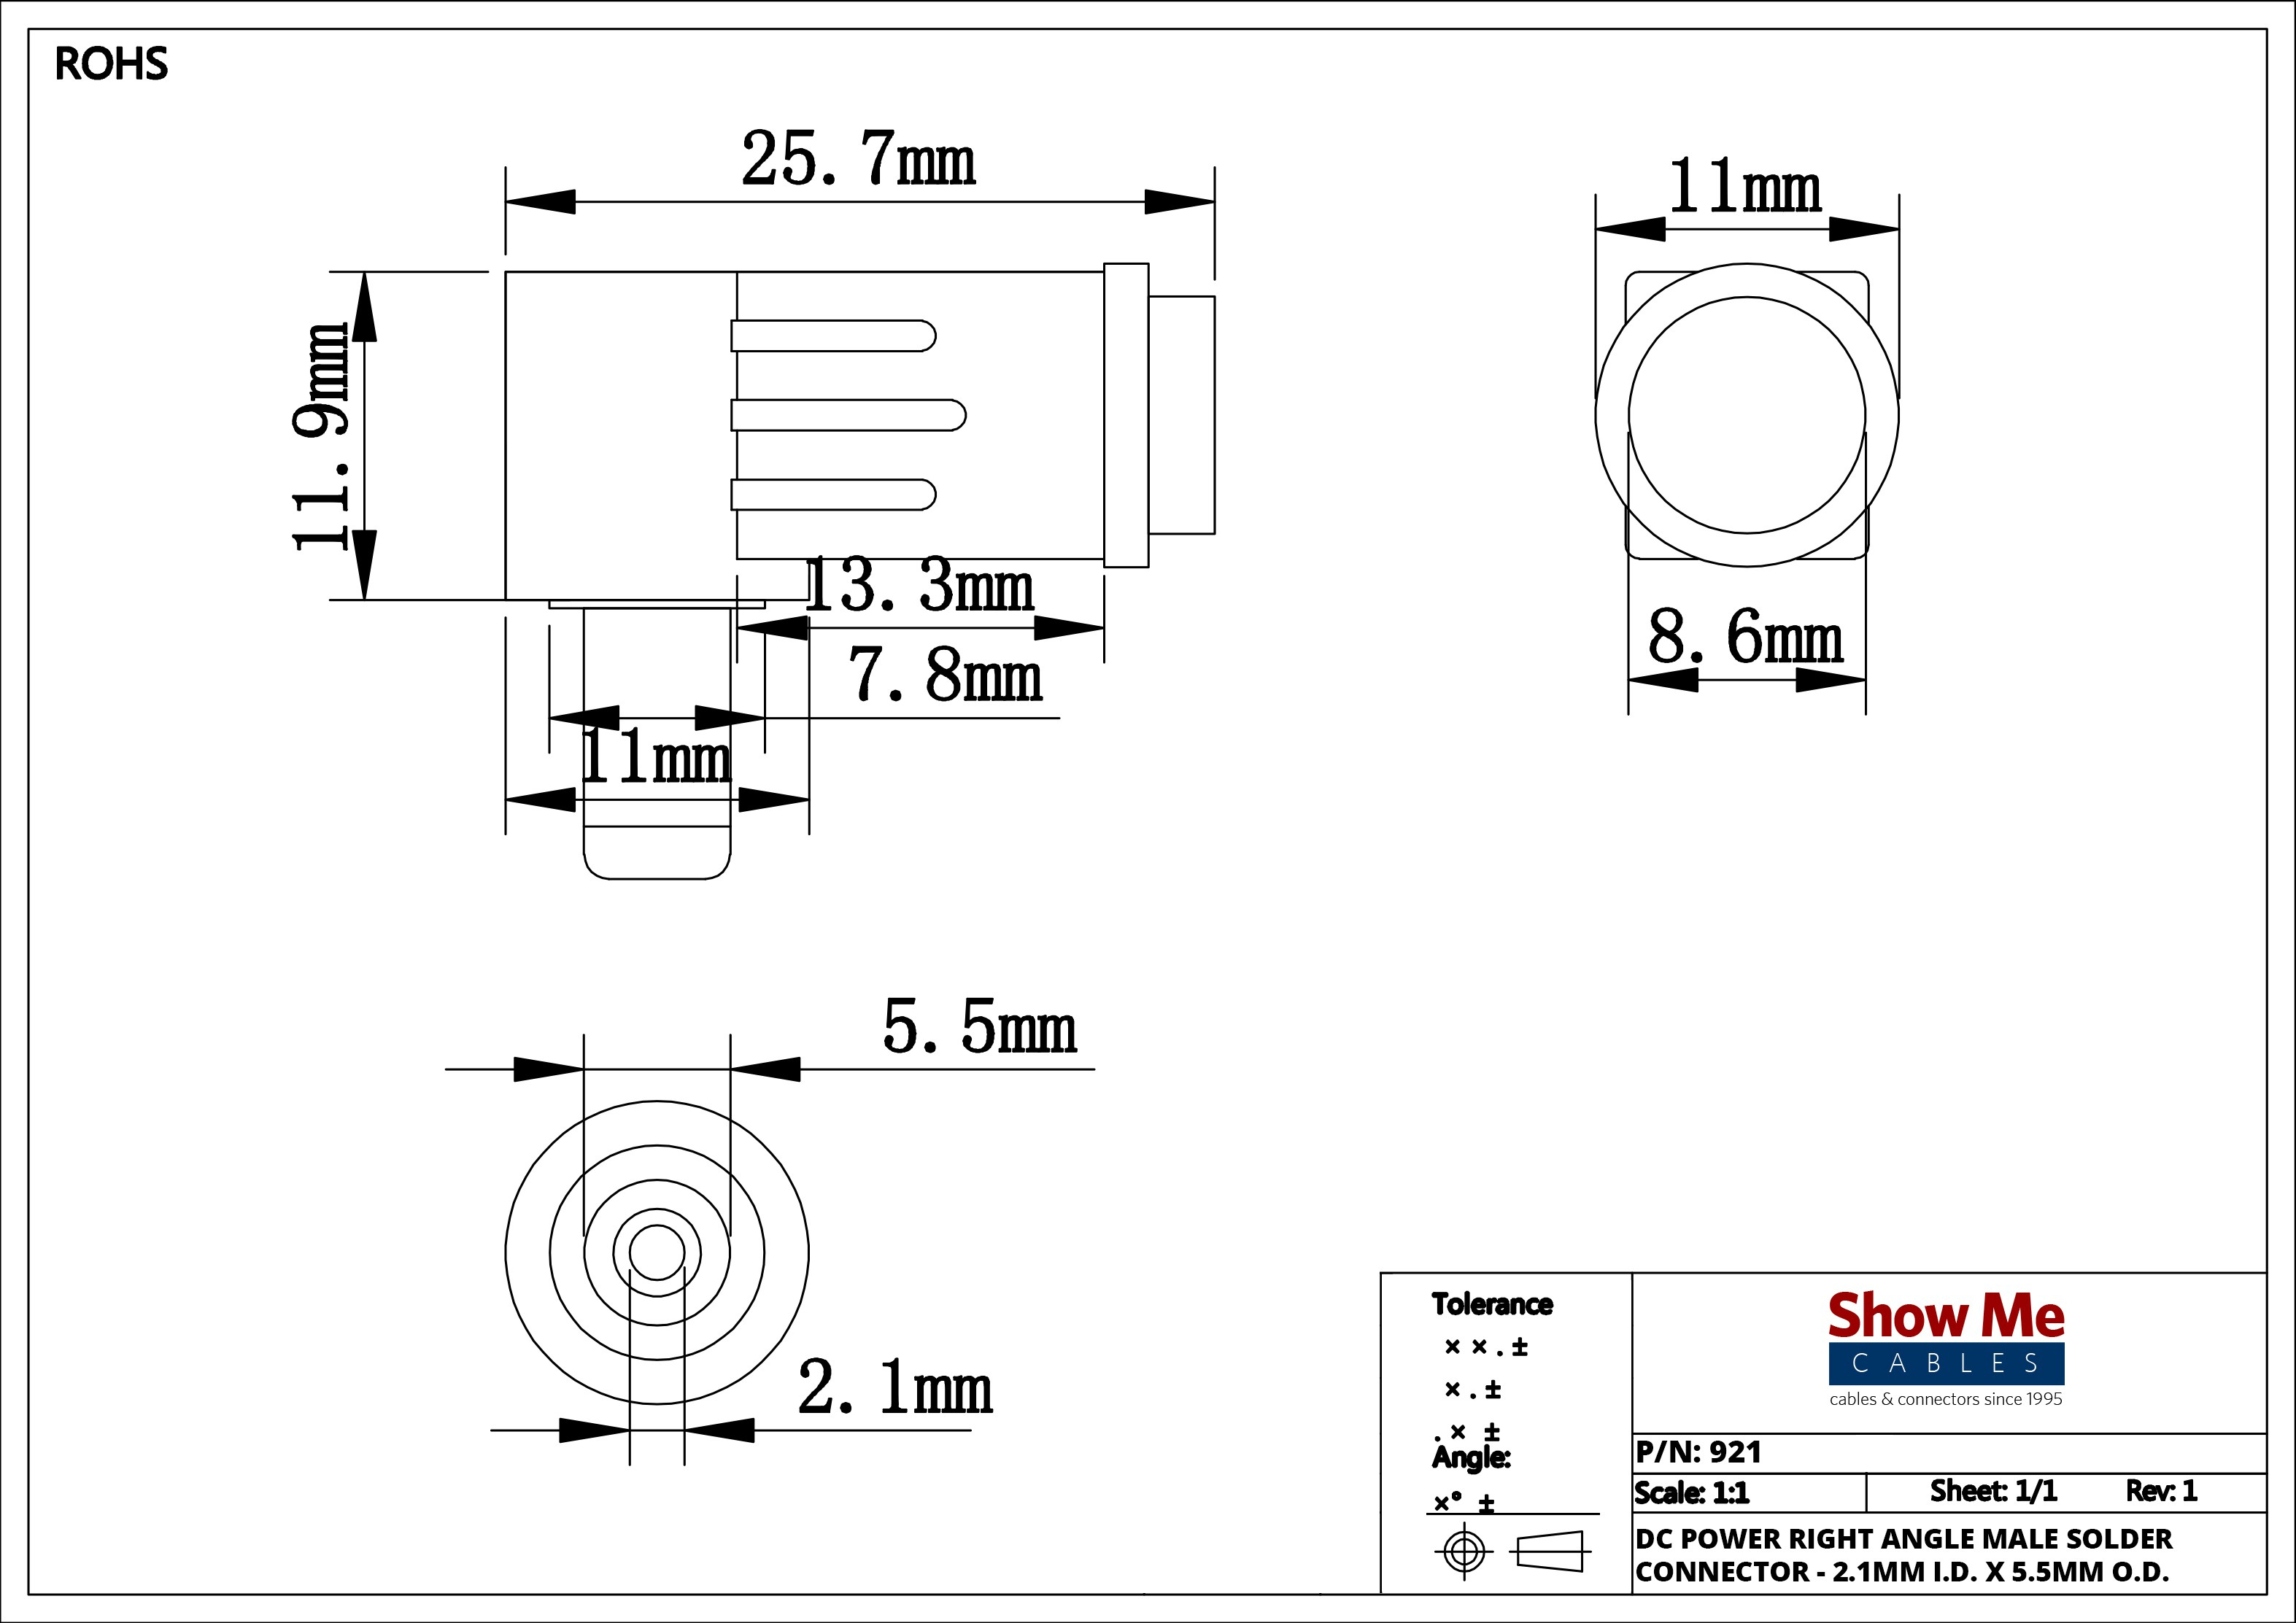 power supply wiring diagram Download-home speaker wiring diagram Collection 3 5 Mm Stereo Jack Wiring Diagram Elegant 2 5mm DOWNLOAD Wiring Diagram 5-s